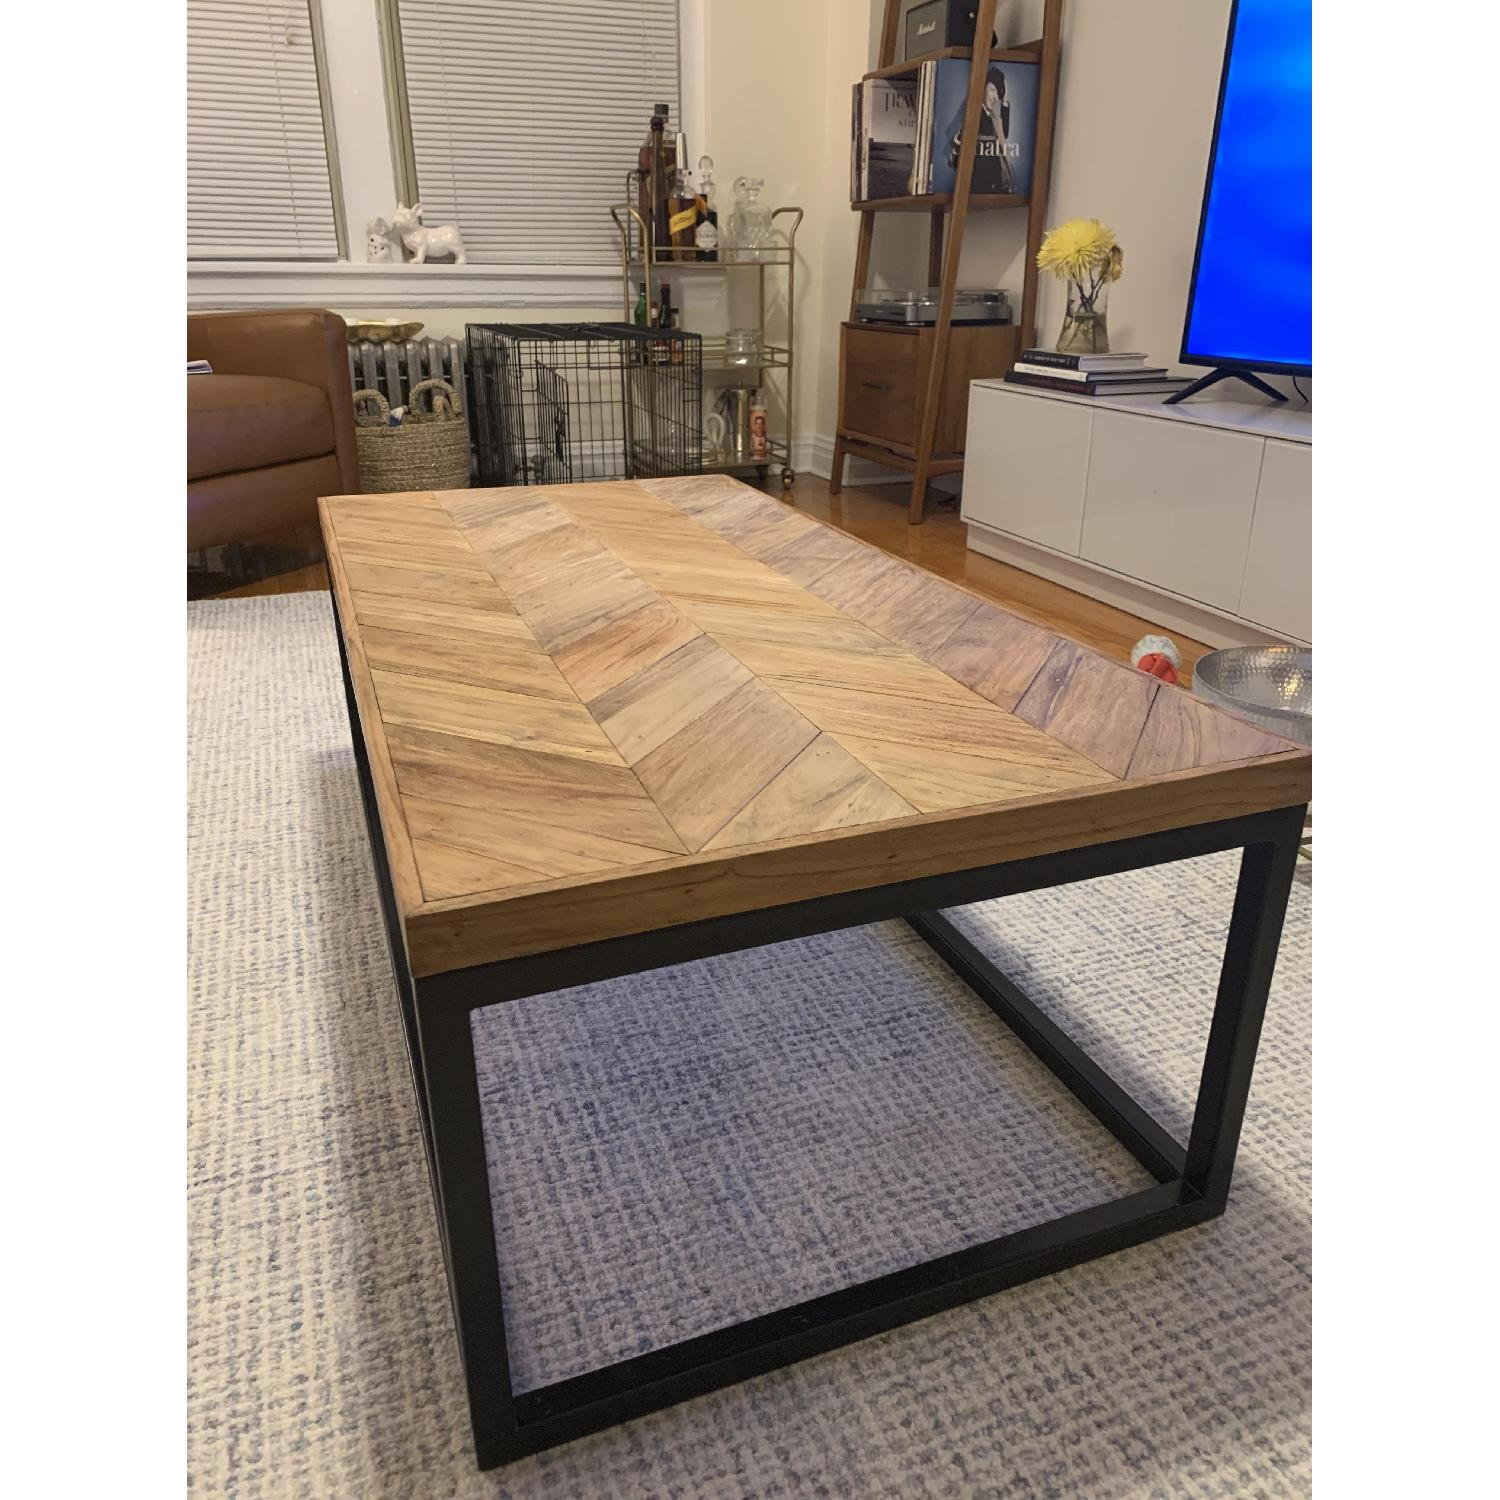 Crate & Barrel Dixon Coffee Table - image-2